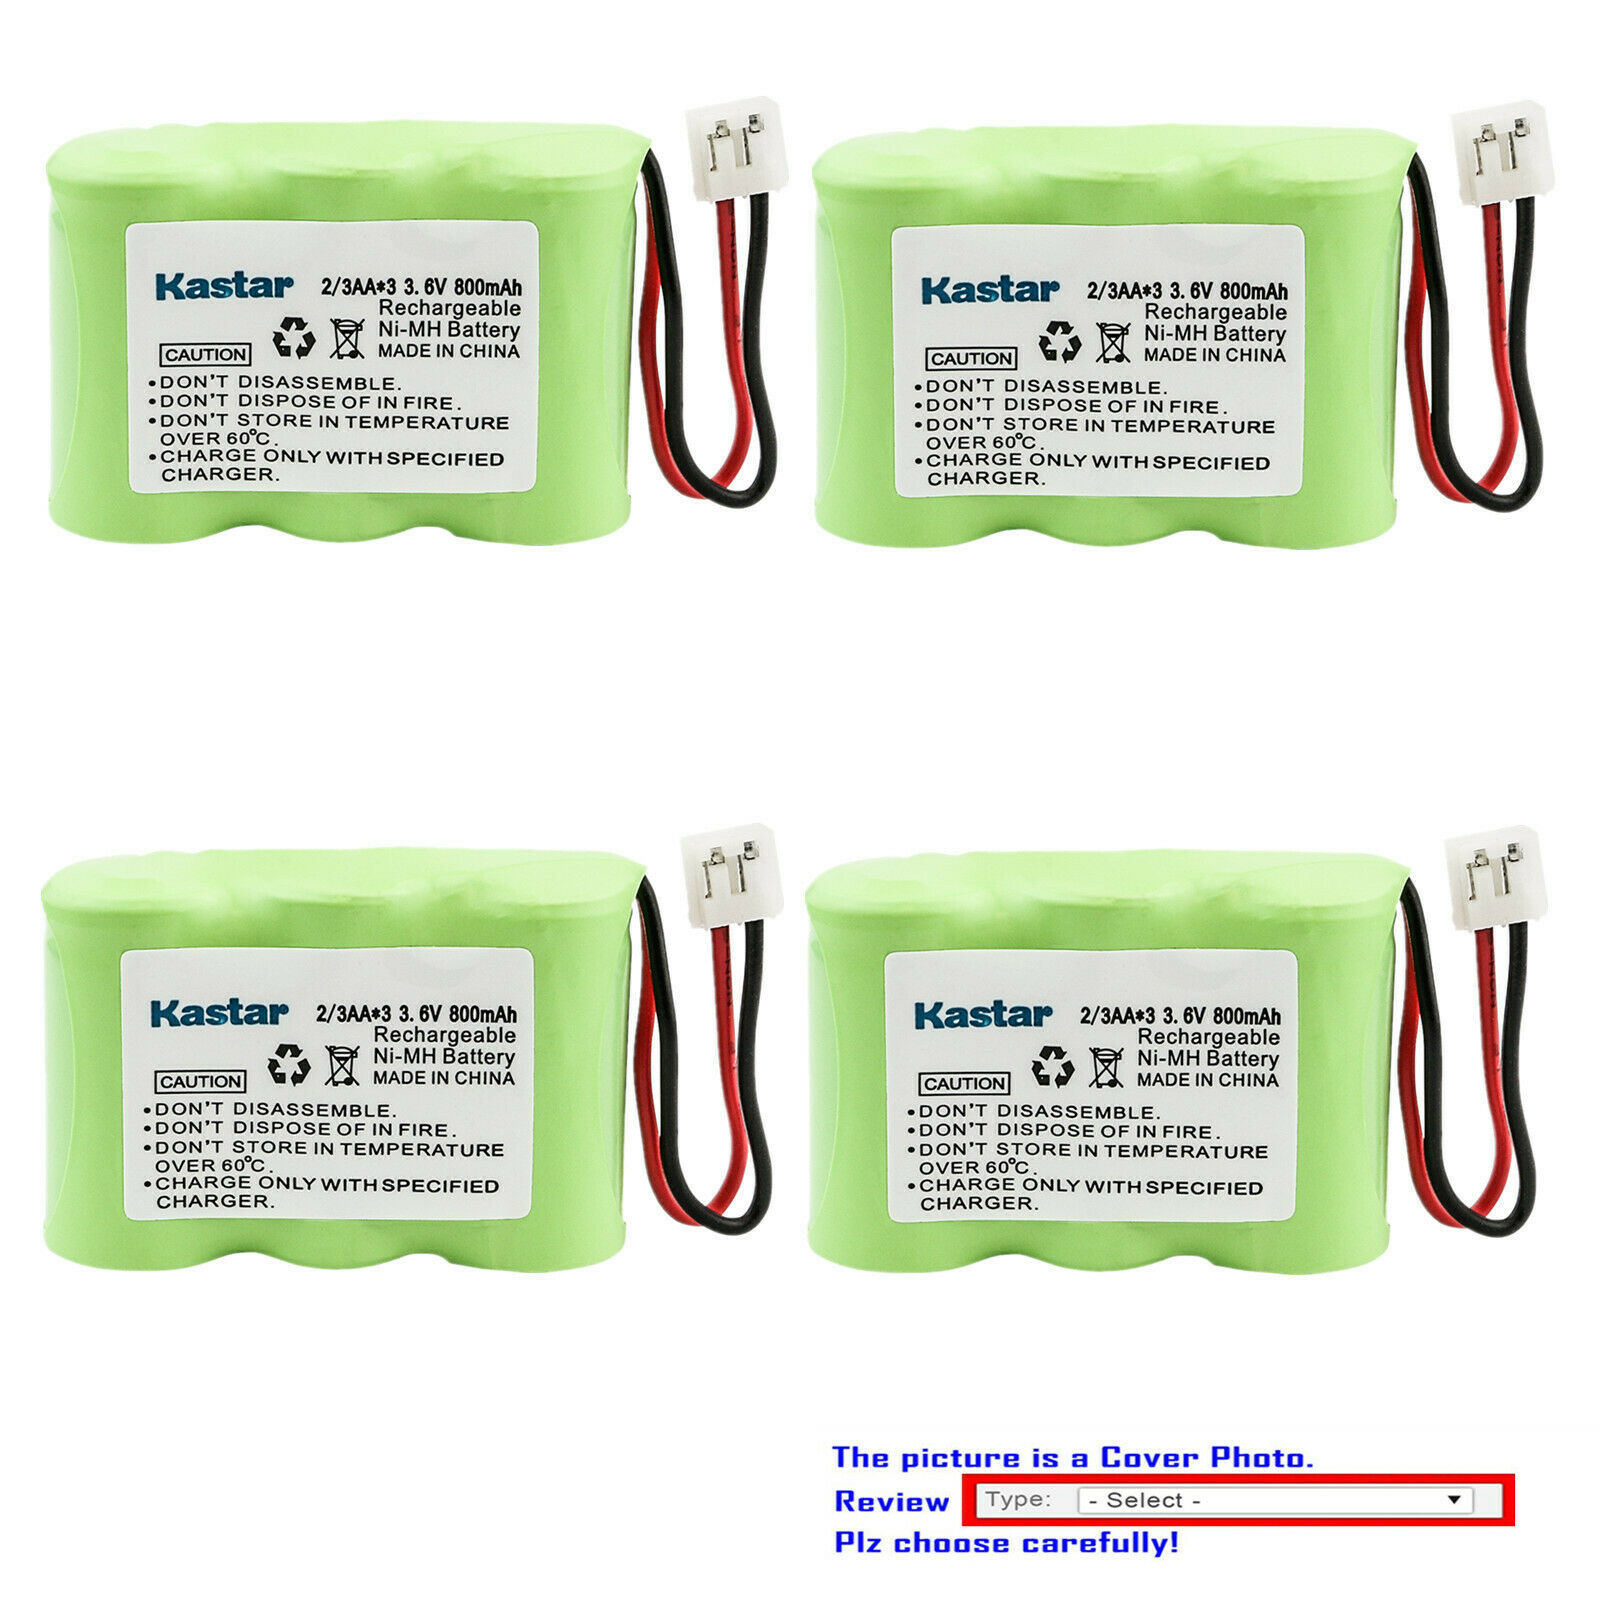 Kastar Cordless Battery Fits for AT&T Lucent 1145 1165 1177 1187 1445 1465 1477